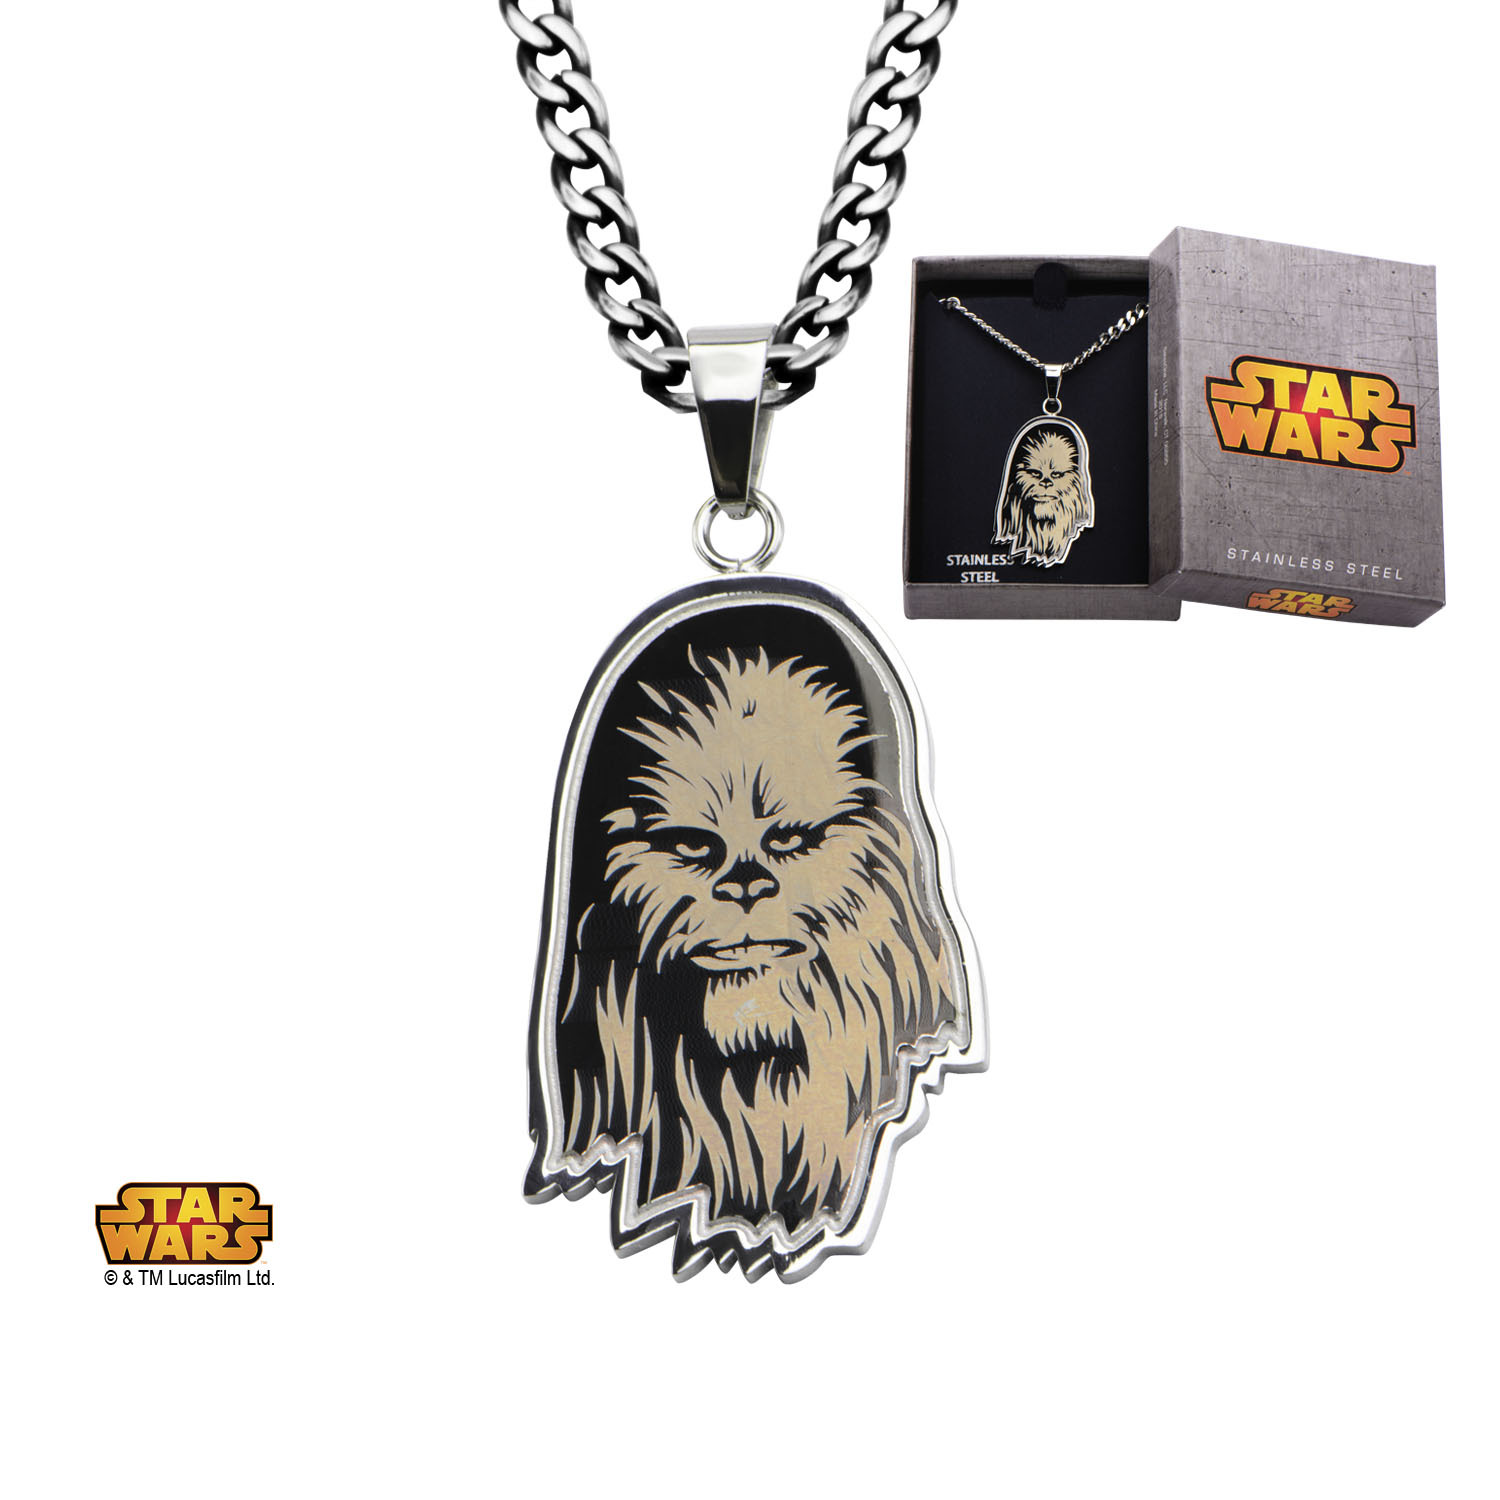 Star Wars Steel Etched Chewbacca Pendant Necklace image